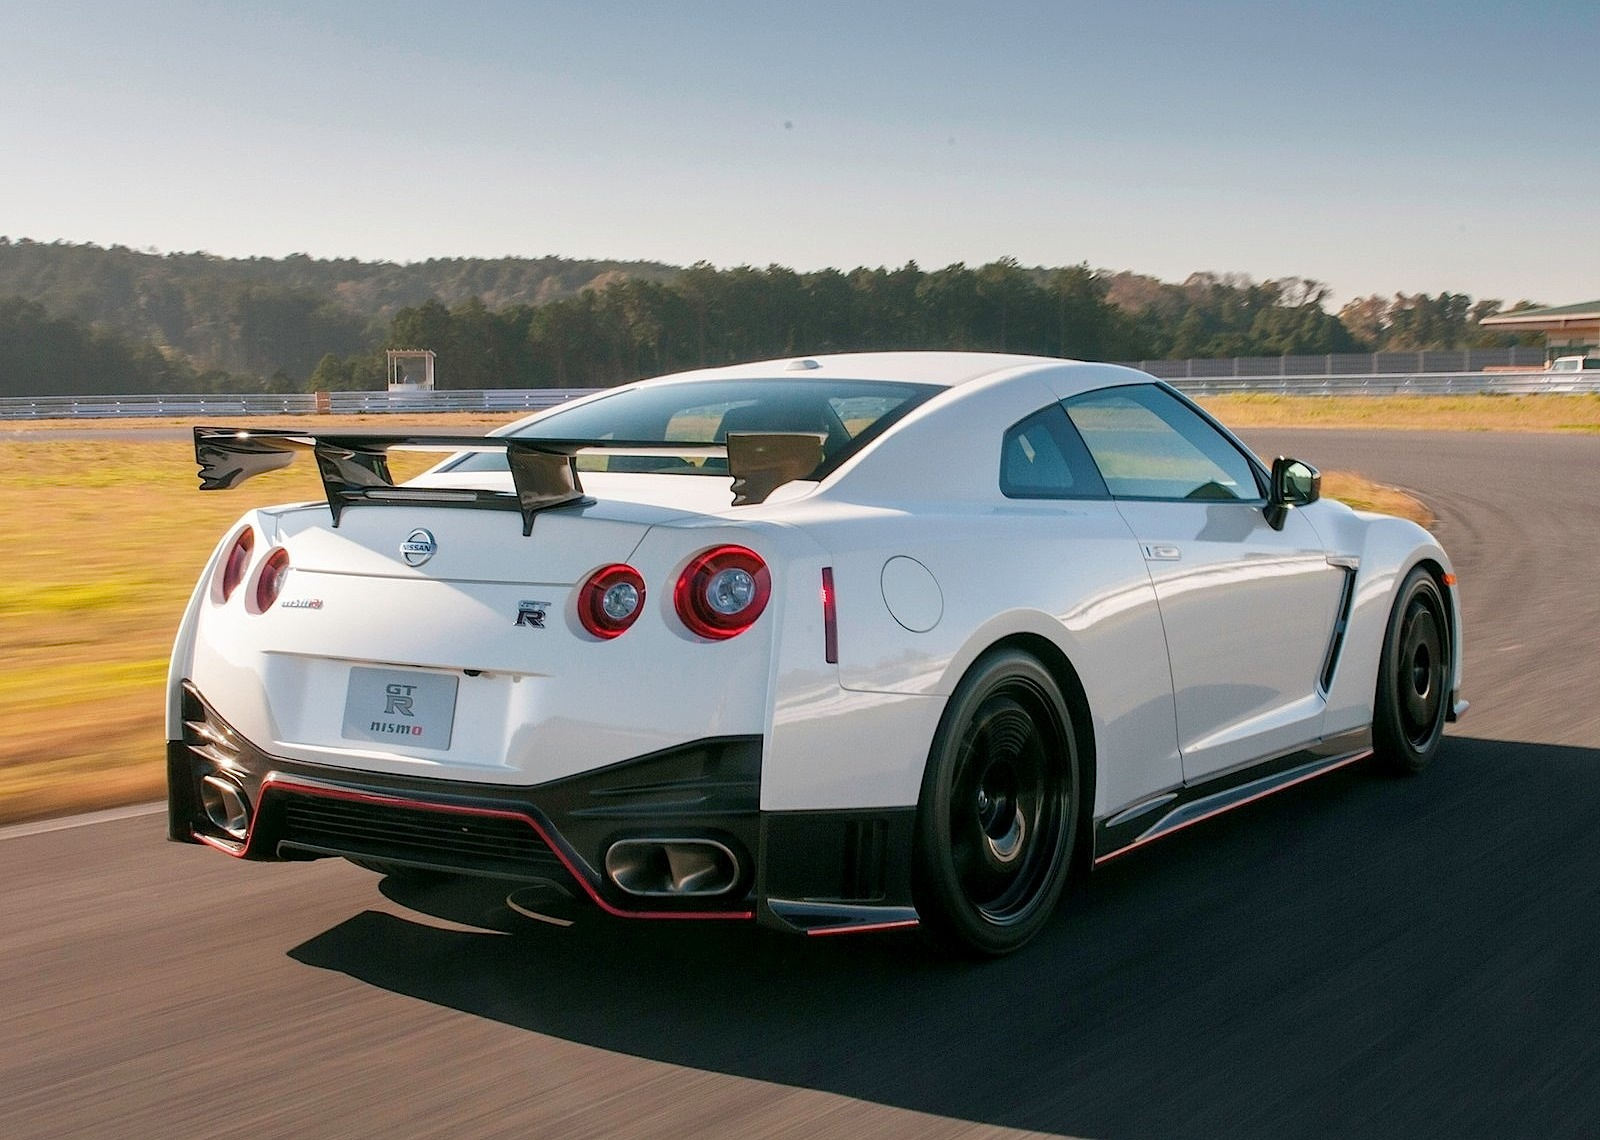 nissan gt r r35 nismo specs photos 2014 2015 2016 2017 2018 autoevolution. Black Bedroom Furniture Sets. Home Design Ideas